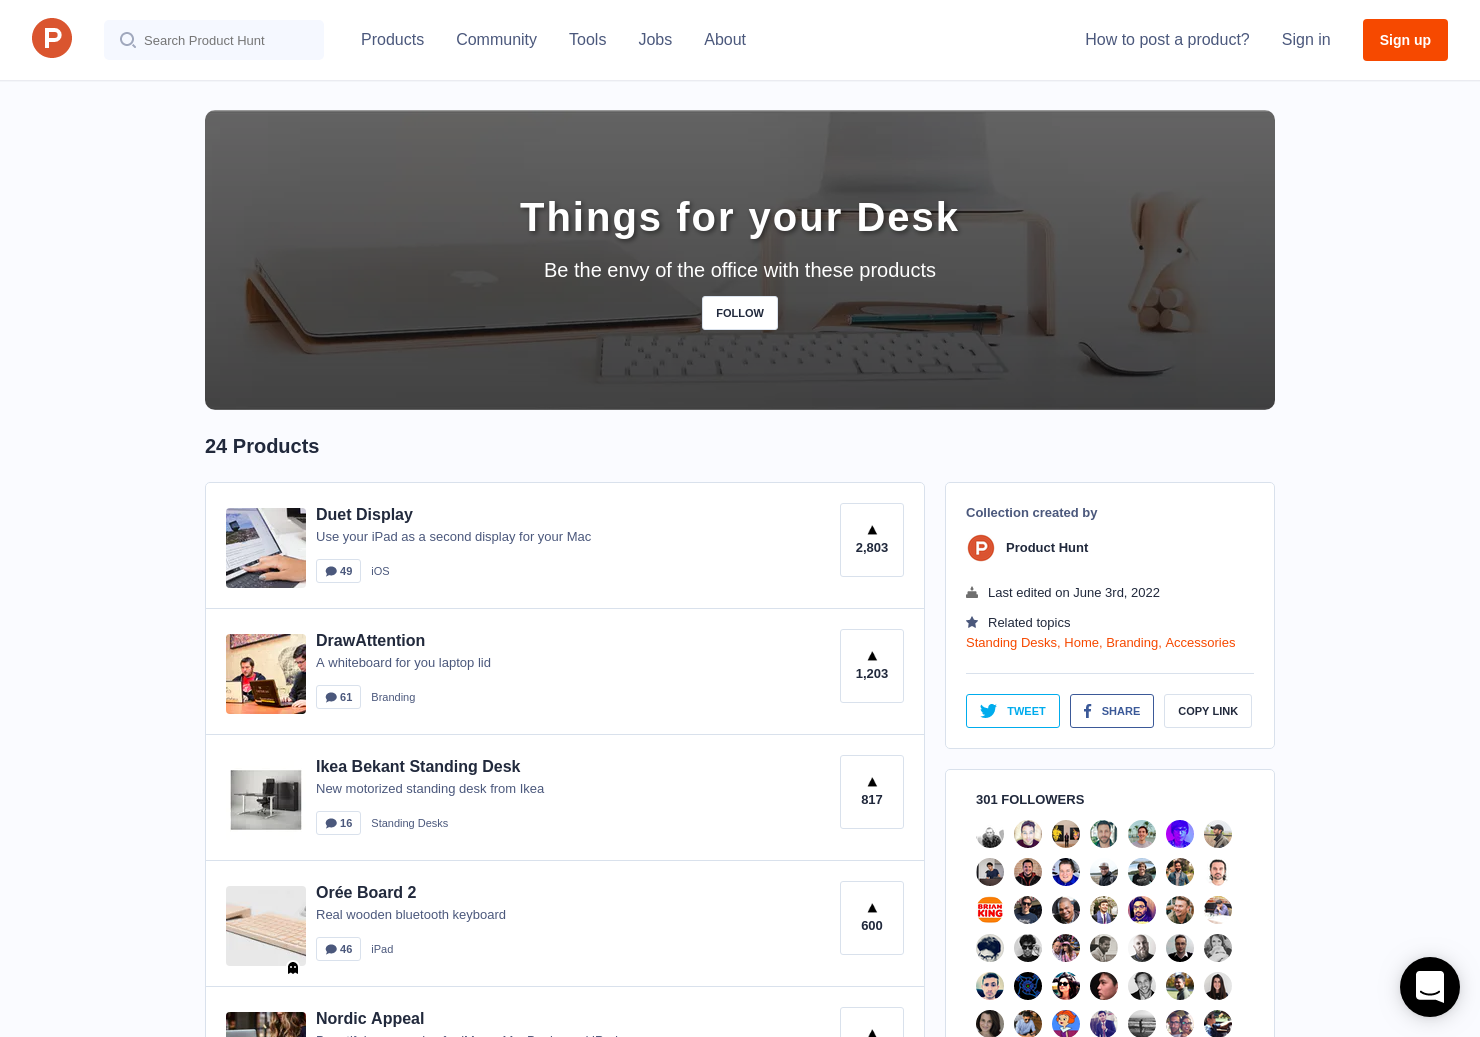 Things For Your Desk Product Hunt